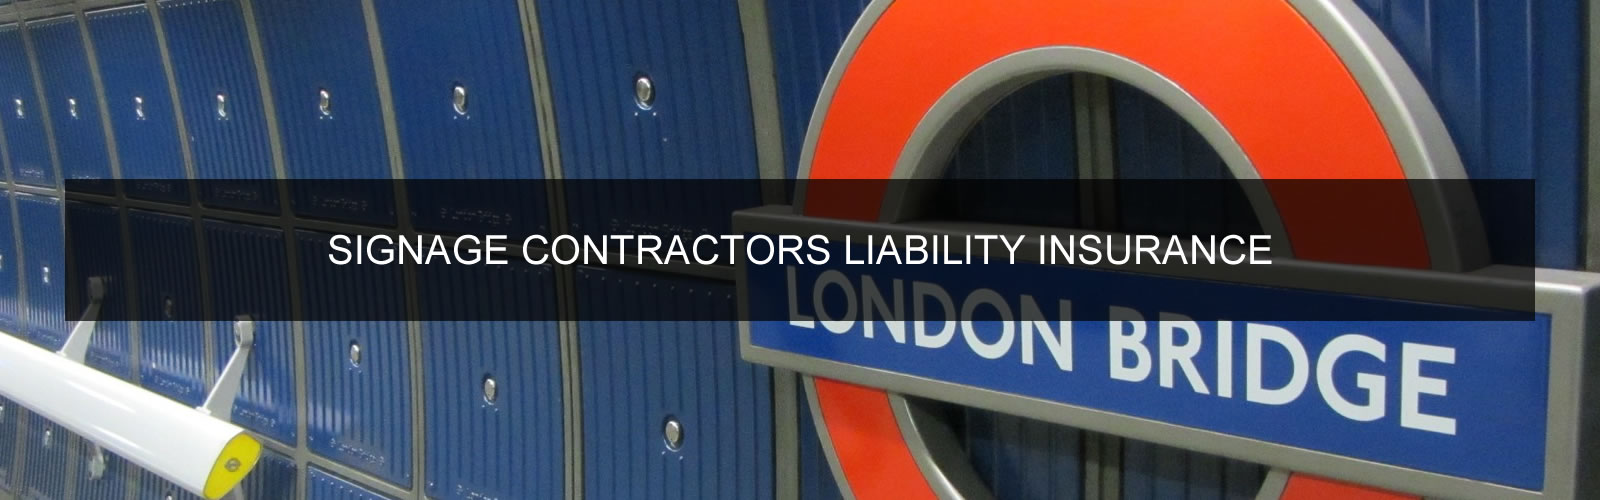 Signage Installation Contractors Liability Insurance